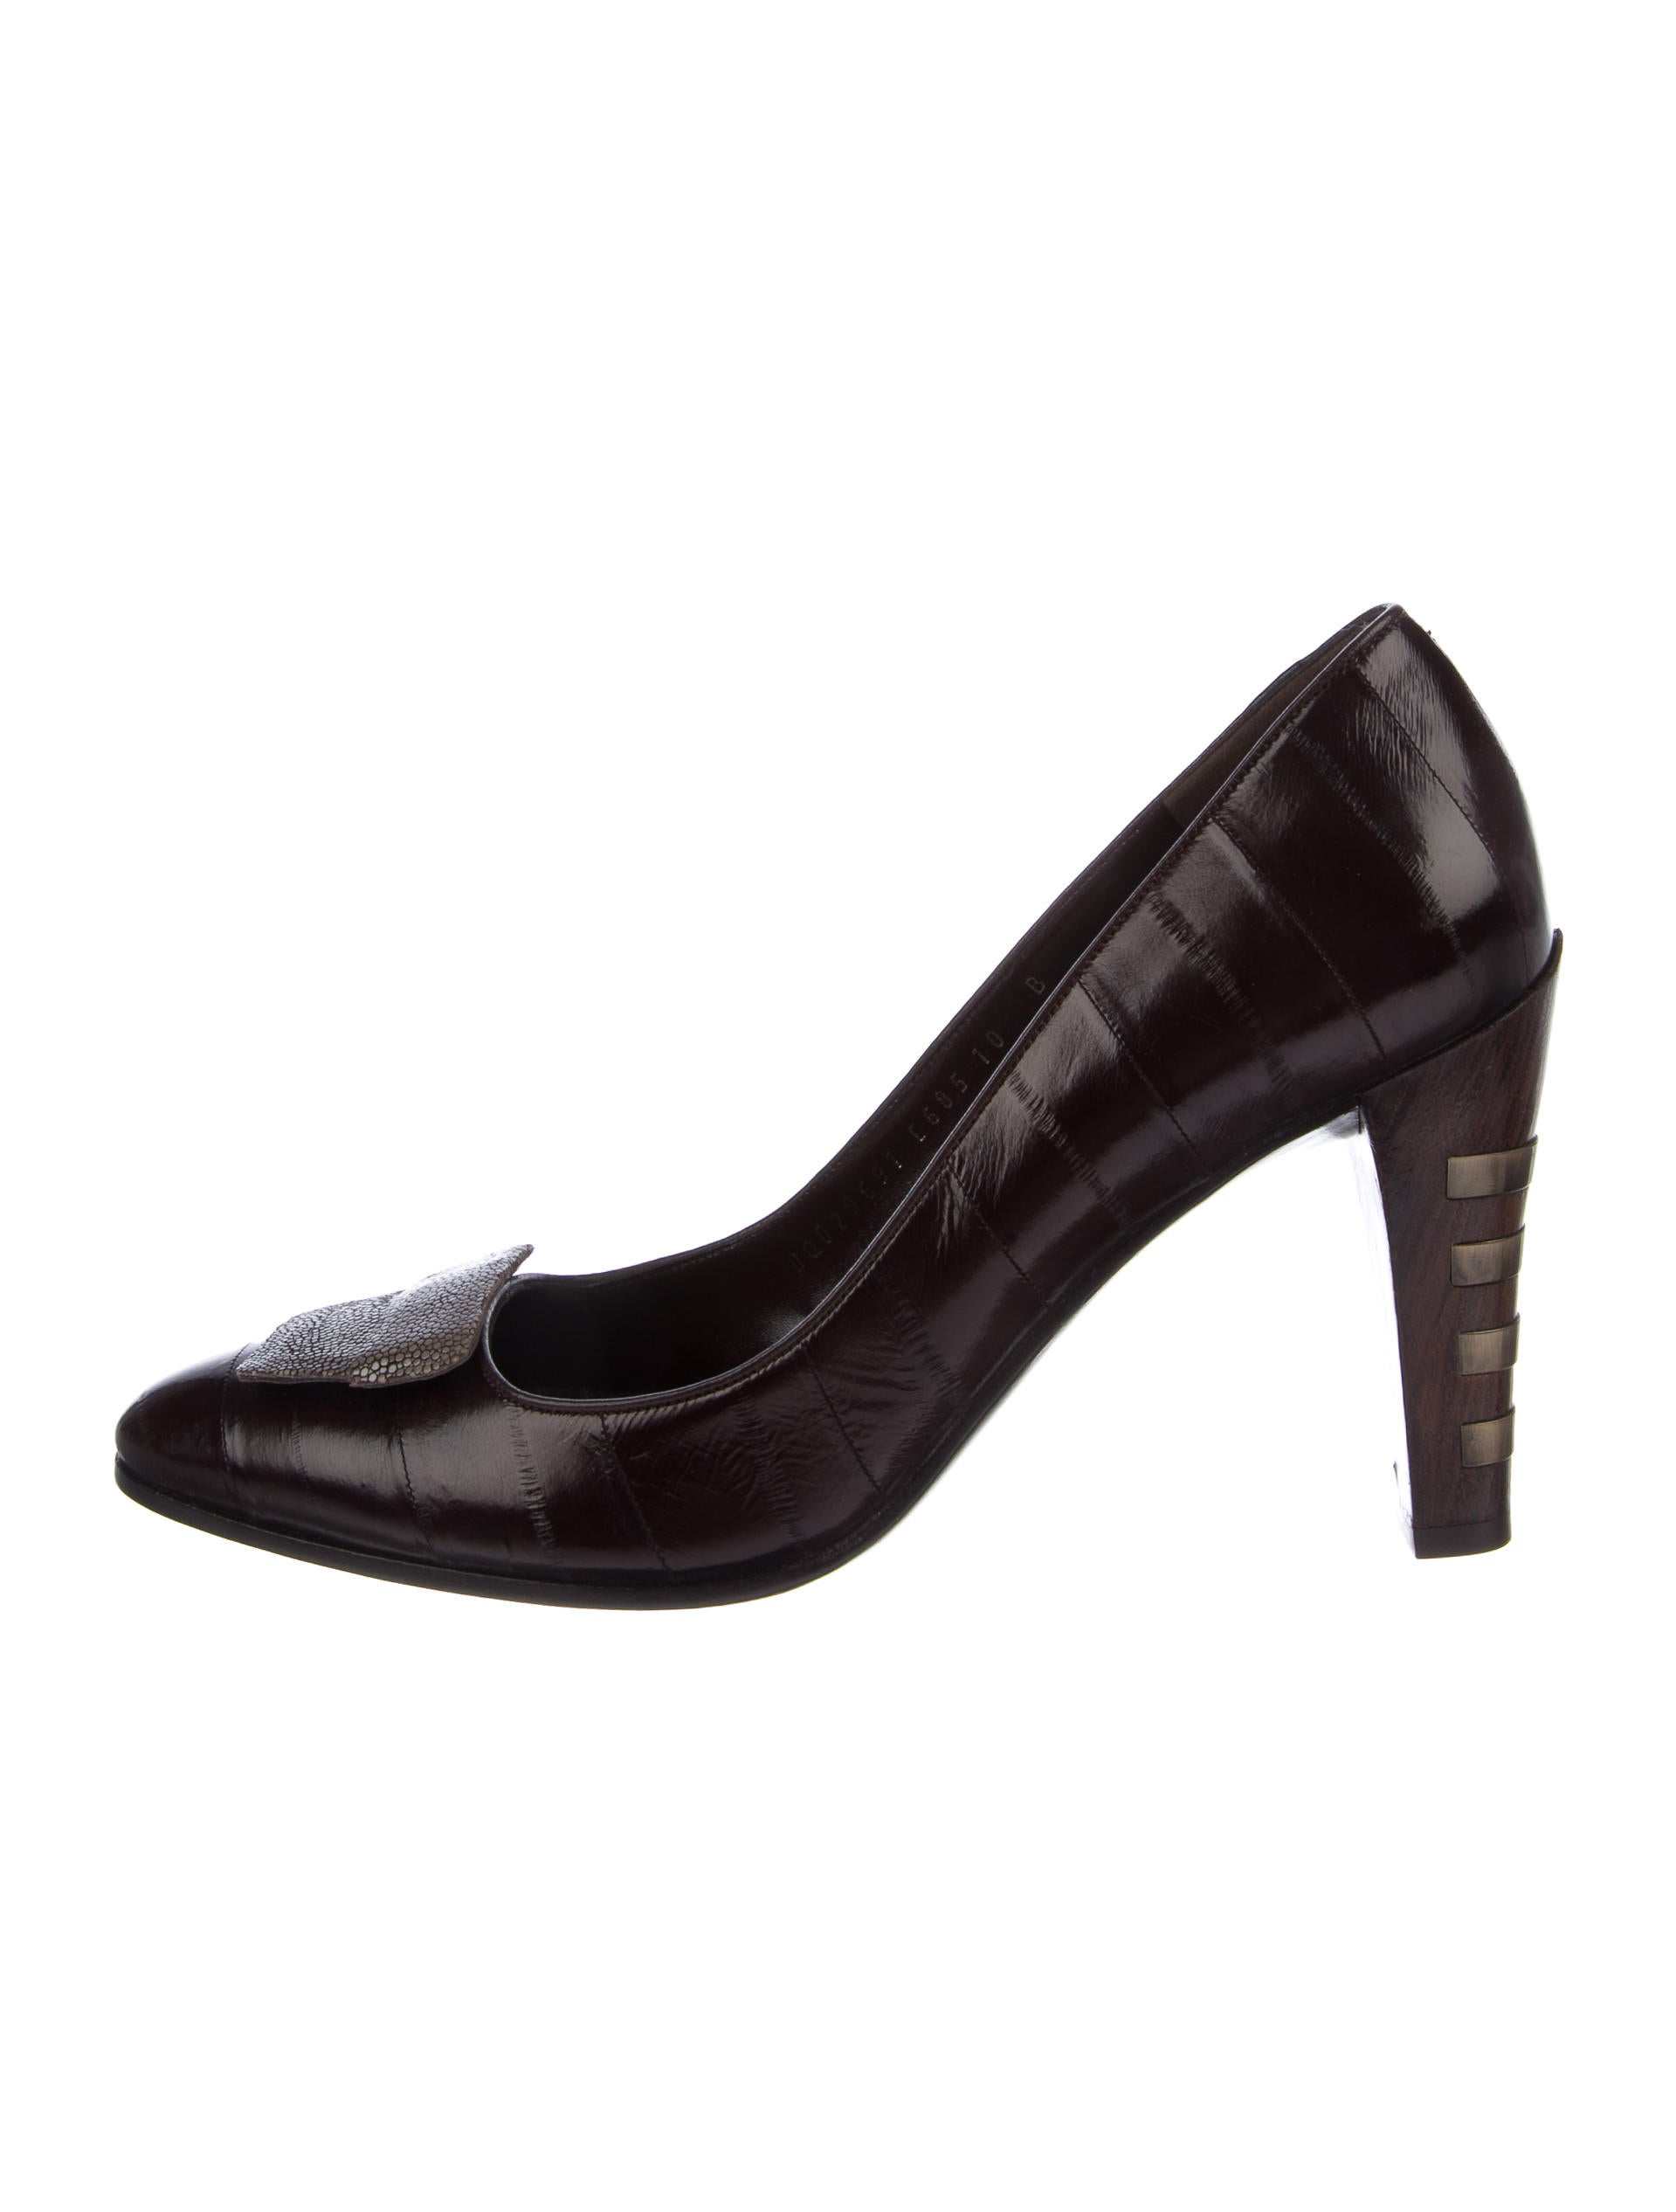 outlet choice huge surprise cheap online Salvatore Ferragamo Eel Semi Pointed-toe Pumps w/ Tags clearance geniue stockist looking for cheap online cheapest price 0ik0ge